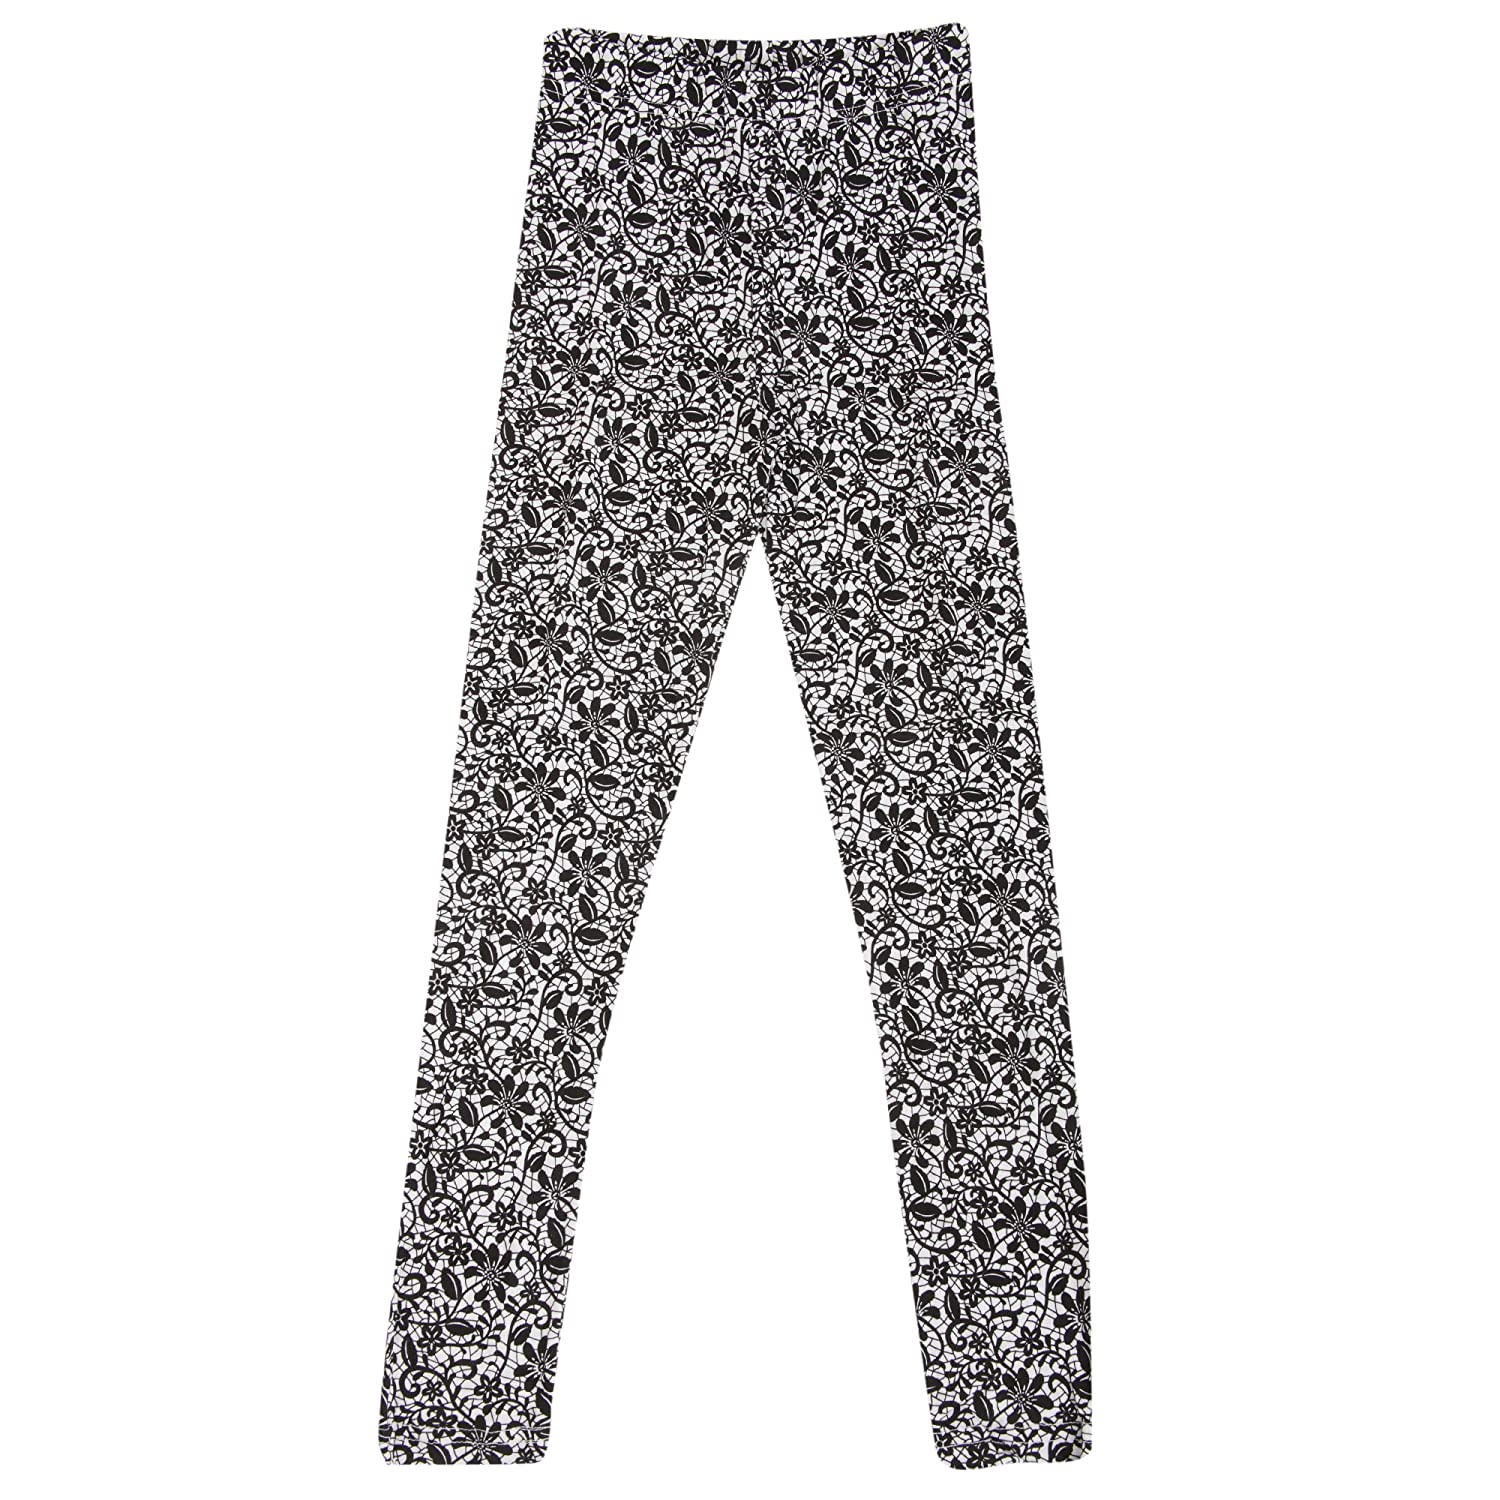 Universal Textiles Childrens Girls Thermal Floral Mosaic Pattern Long Janes UTTHERM146_4